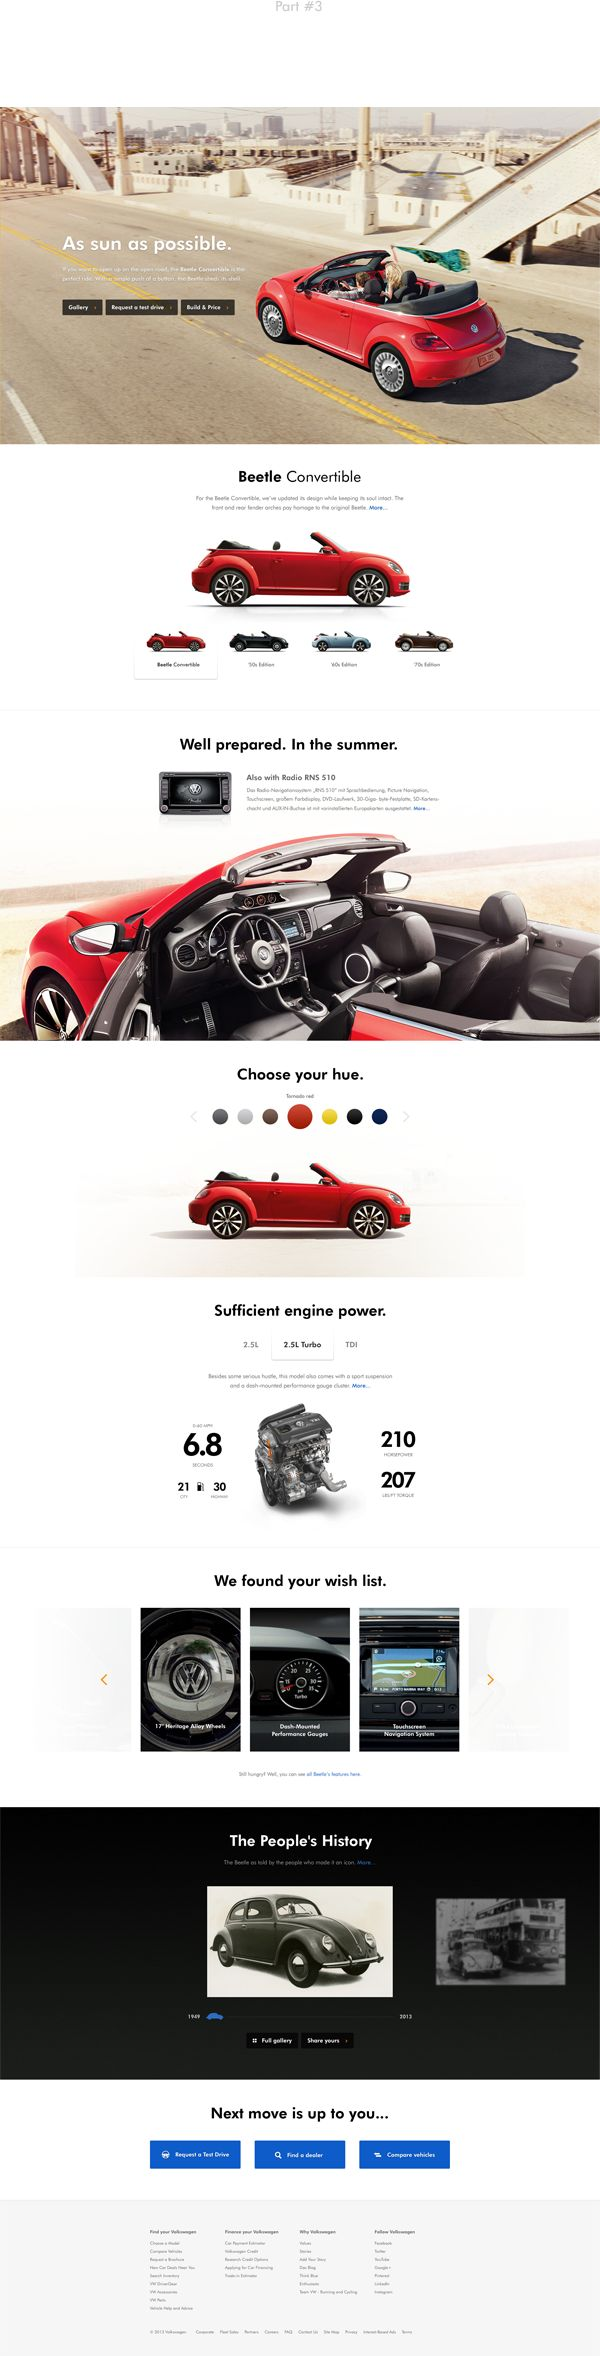 Volkswagen Website Redesign on Web Design Served